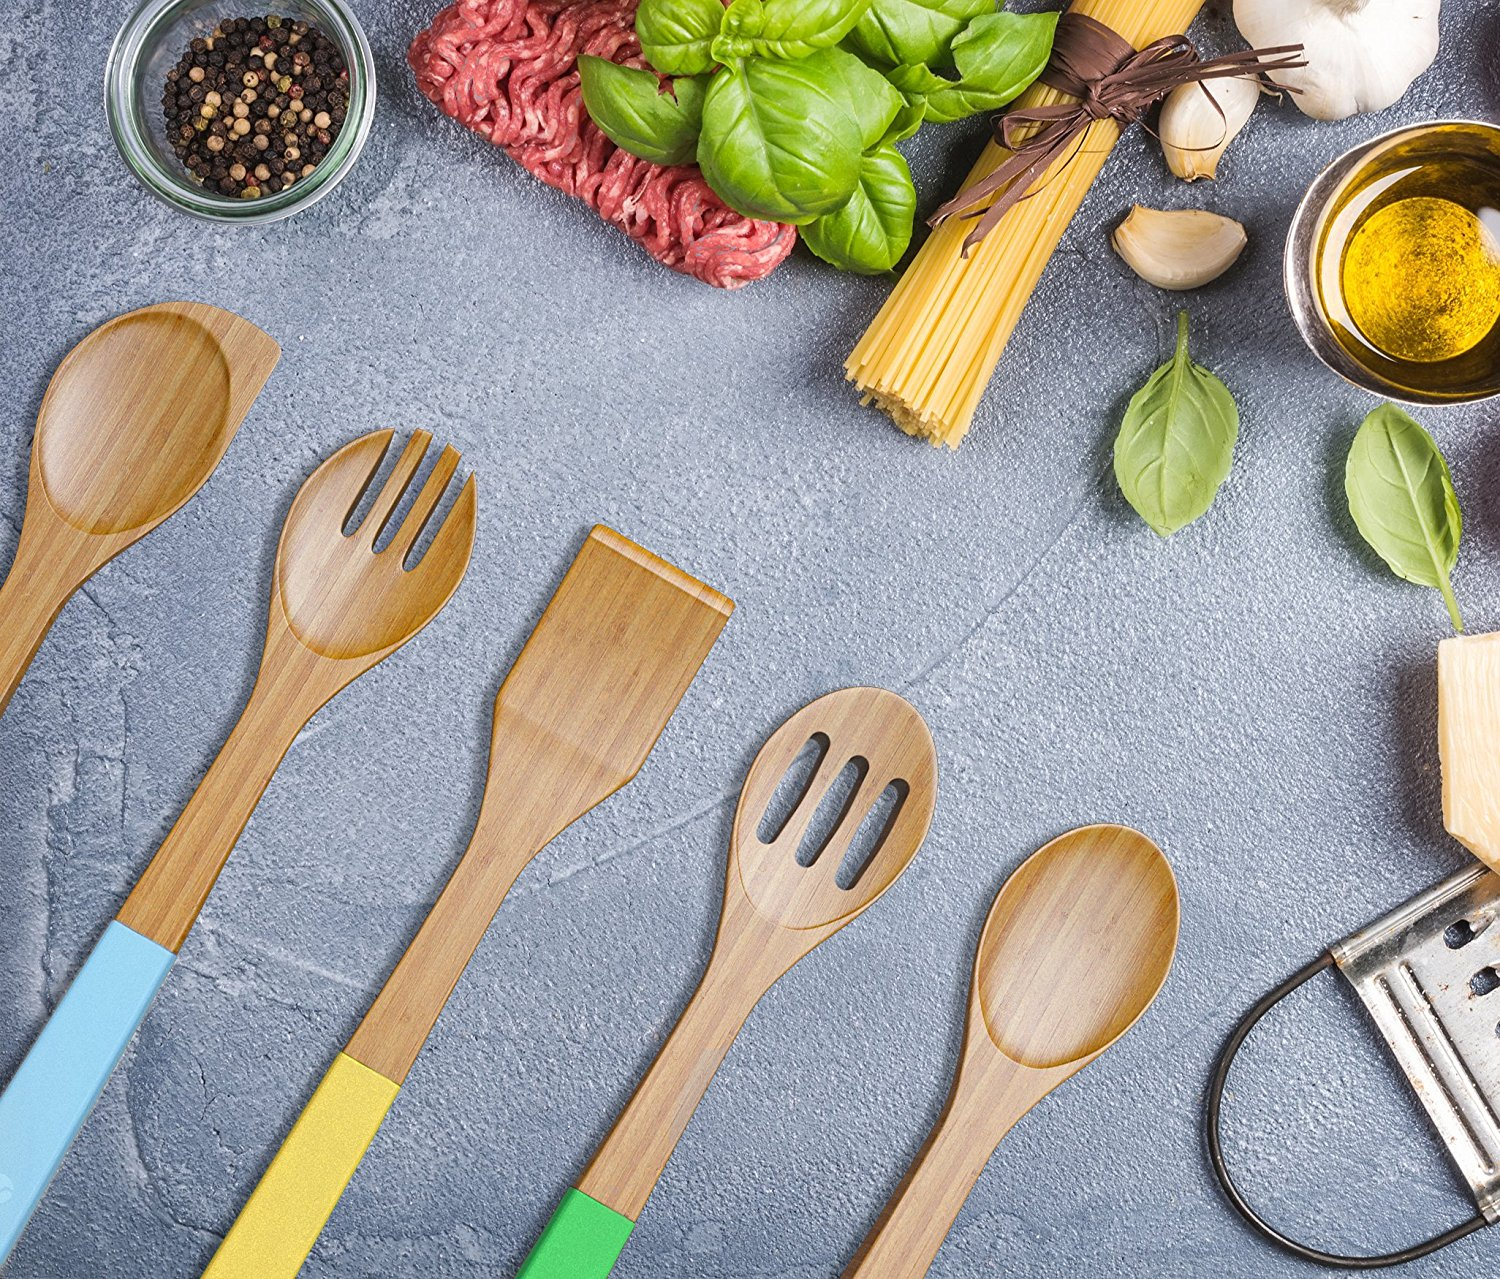 Vremi 5 Piece Bamboo Spoons Cooking Utensils Wooden Spoons And Spatula Utensil Set Bamboo Wood Nonstick Cooking Spoons For Kitchen With Colorful